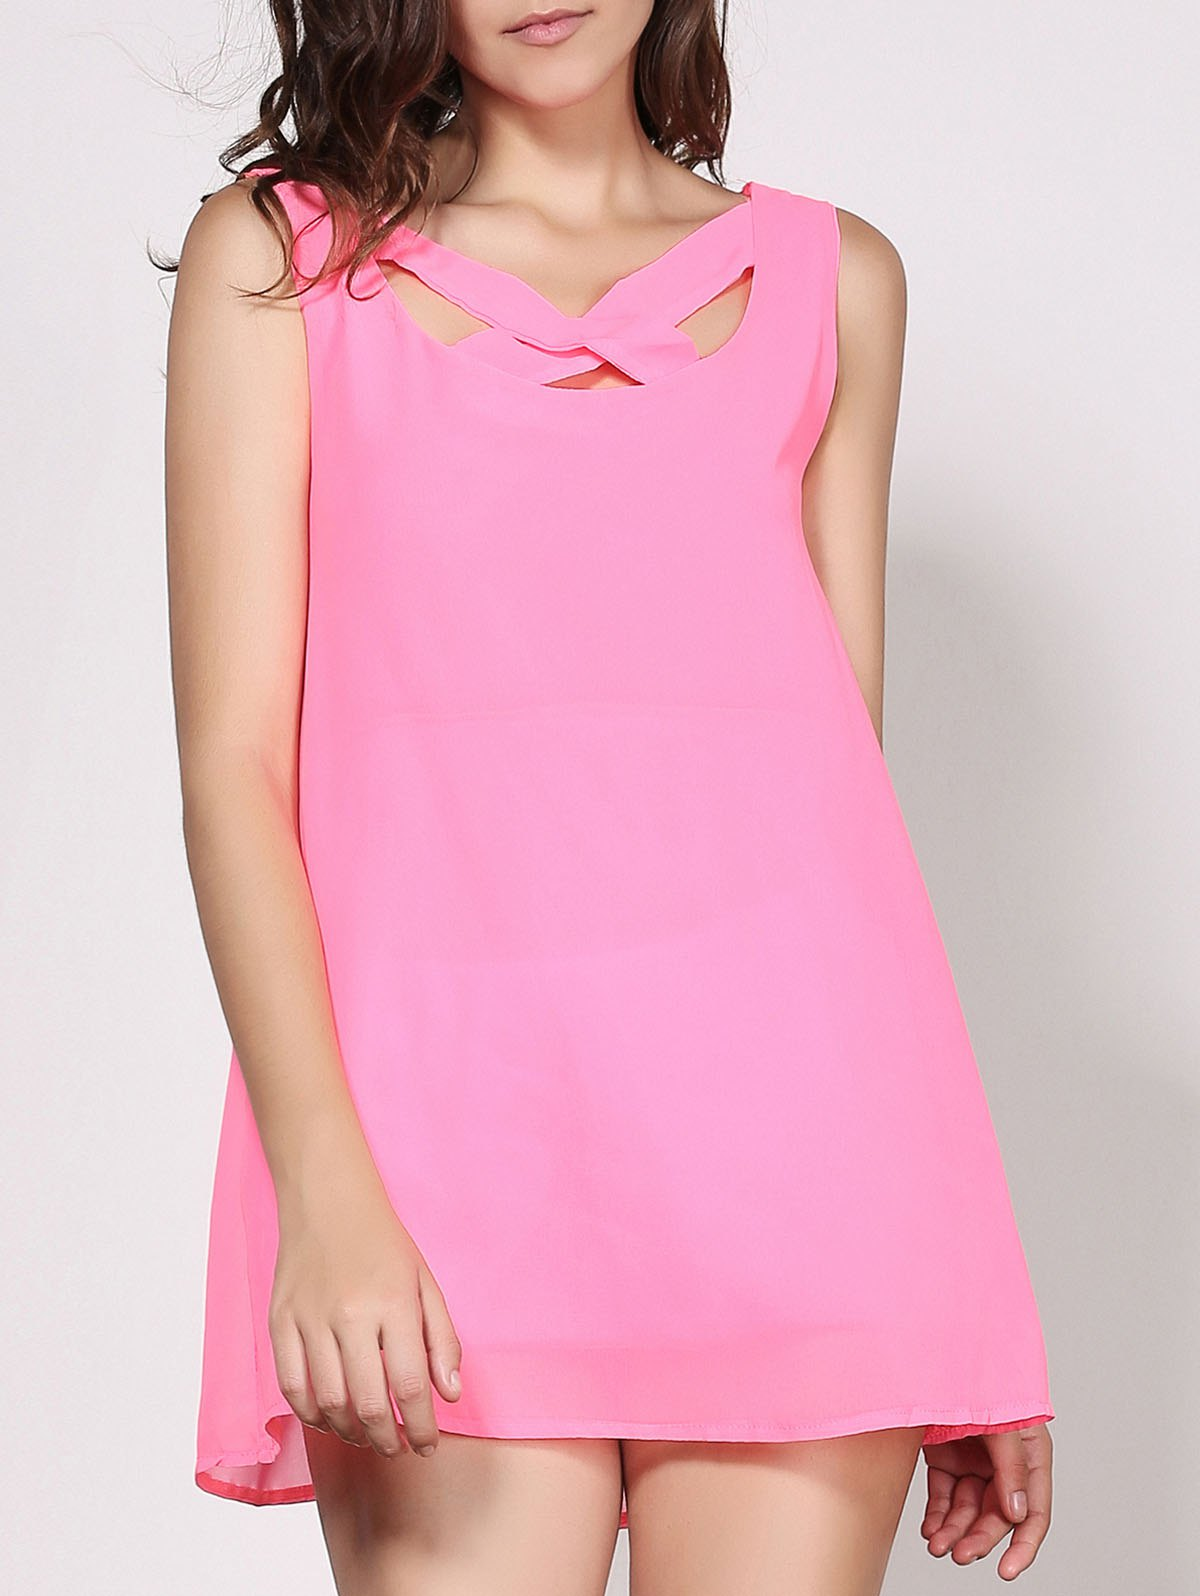 Sexy V-Neck manches Solide Couleur détouré Dress - Rose Pâle S